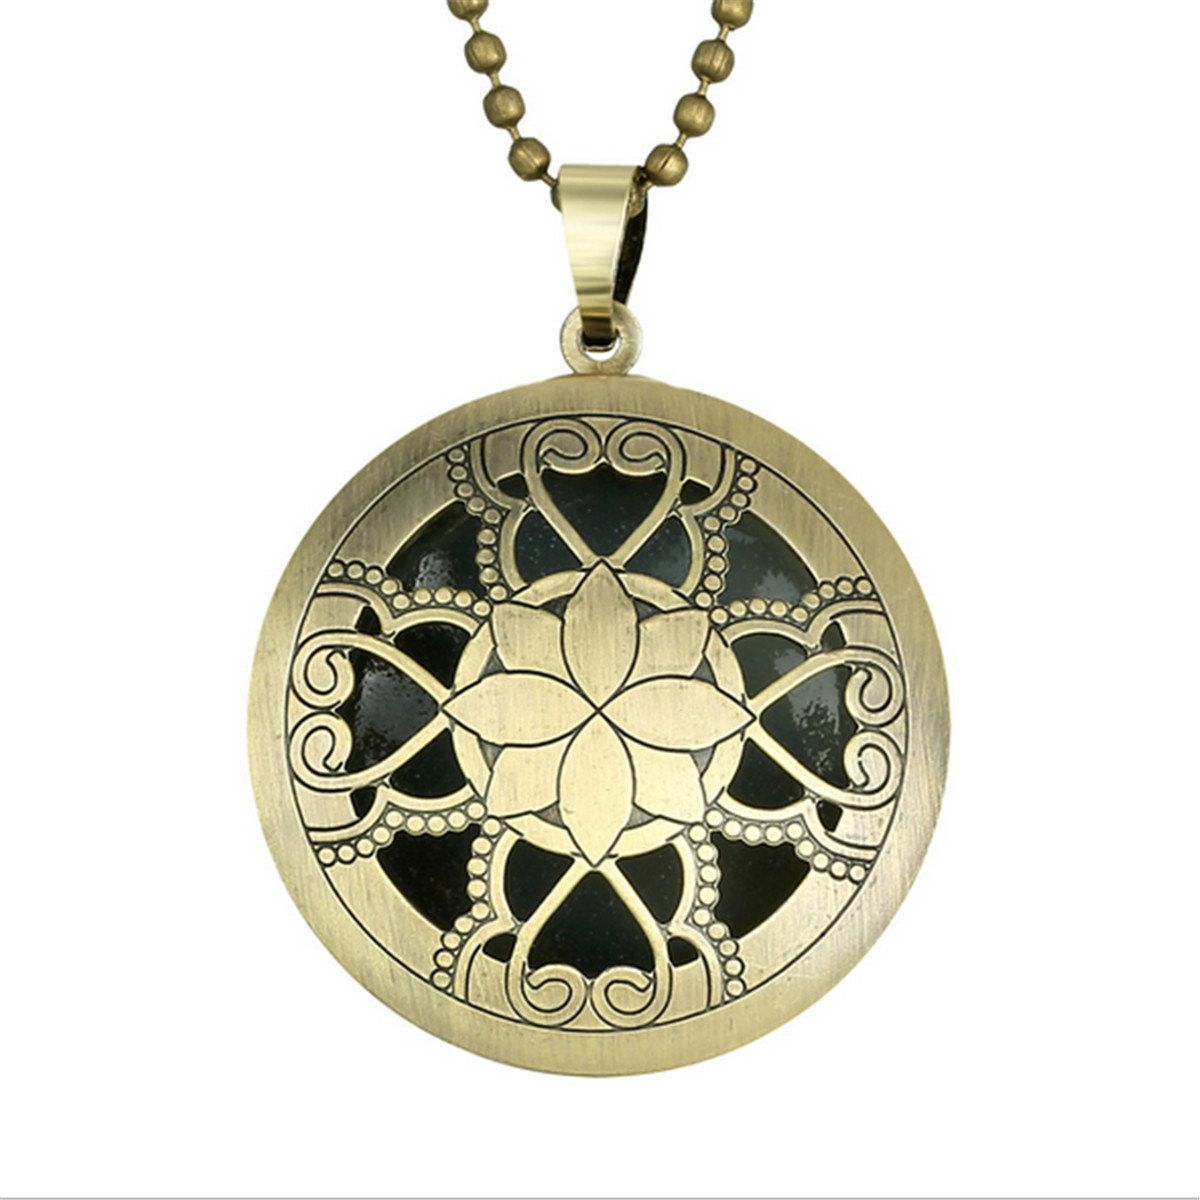 Hollow alloy luminous locket pendant necklace pendants